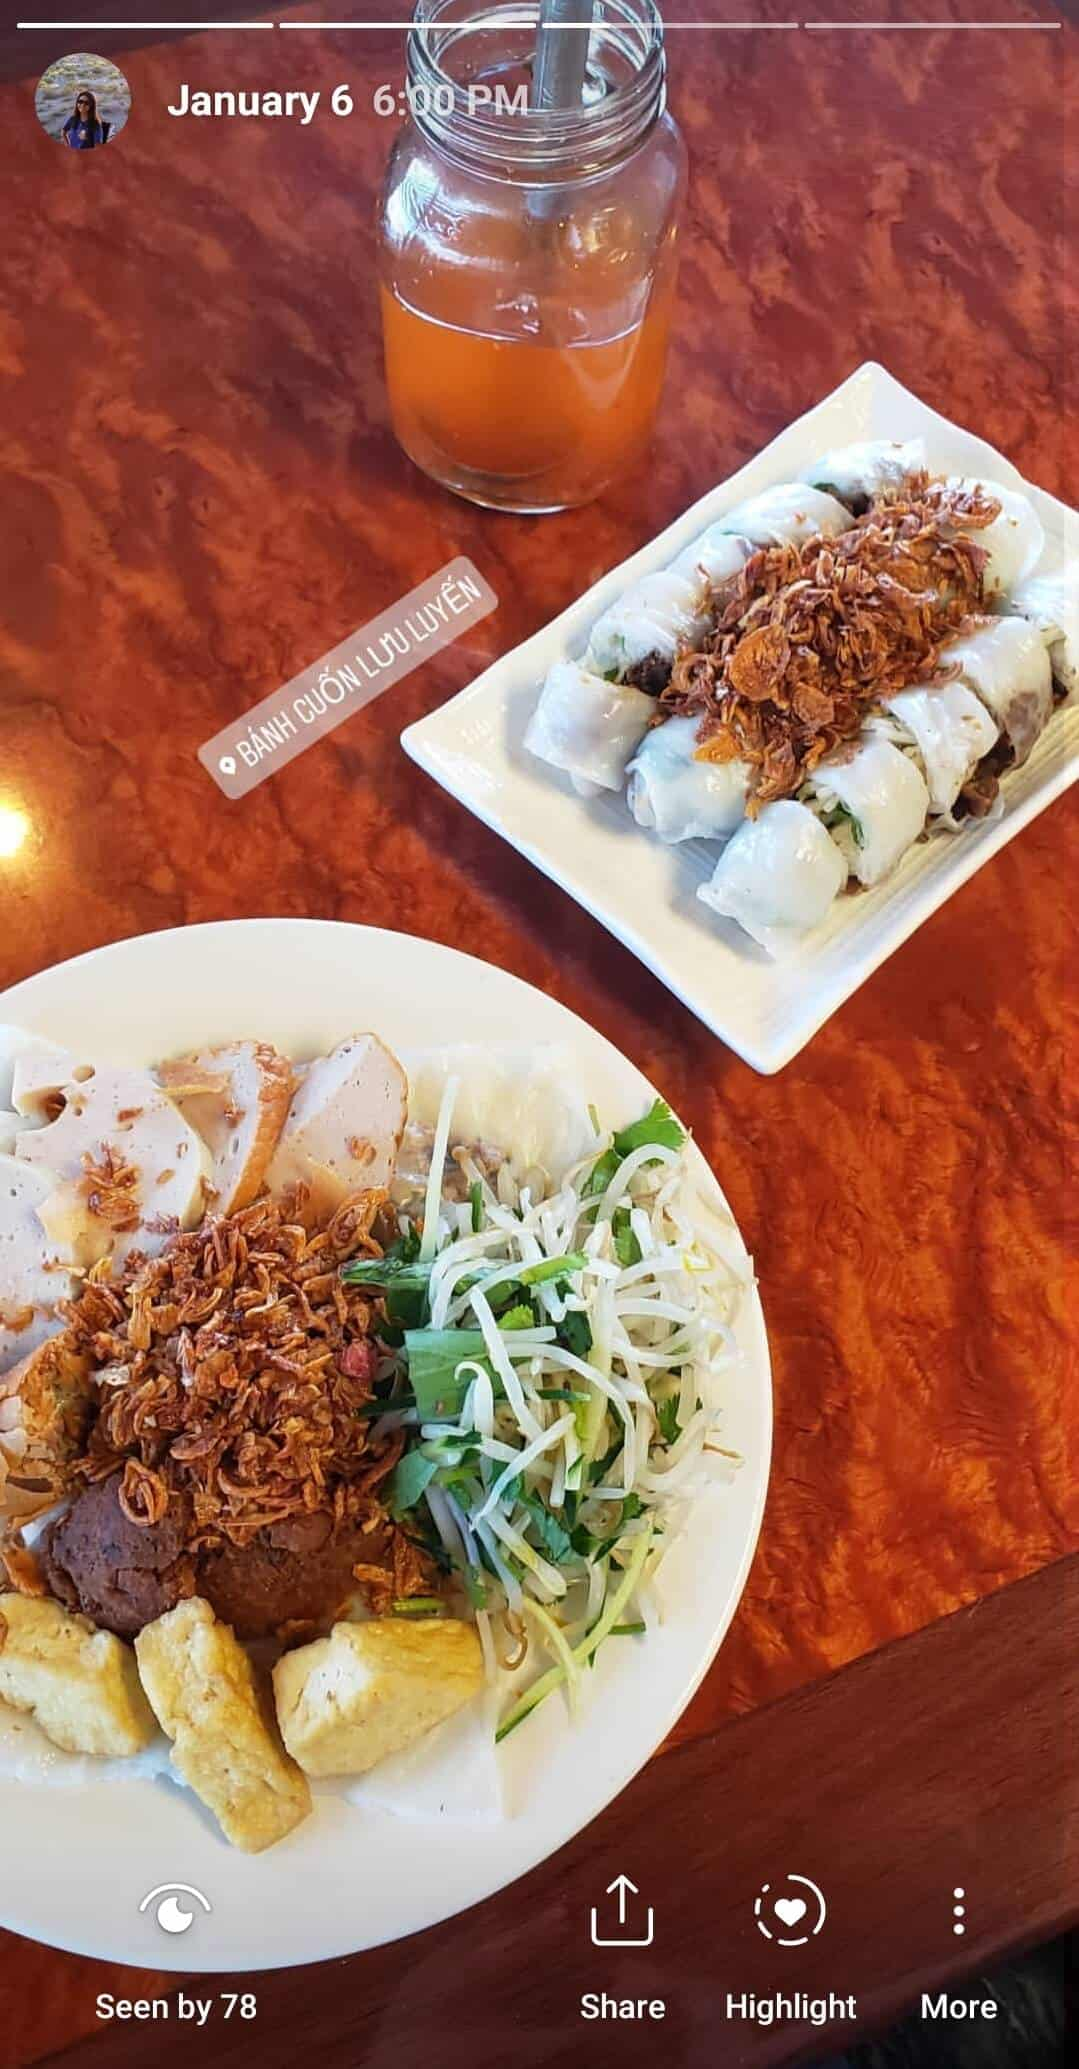 Bánh cuốn (Vietnamese steamed rice paper rolls topped with meat, veggies and crispy onions) from Banh Cuon Luu Luyen in Garden Grove, CA.